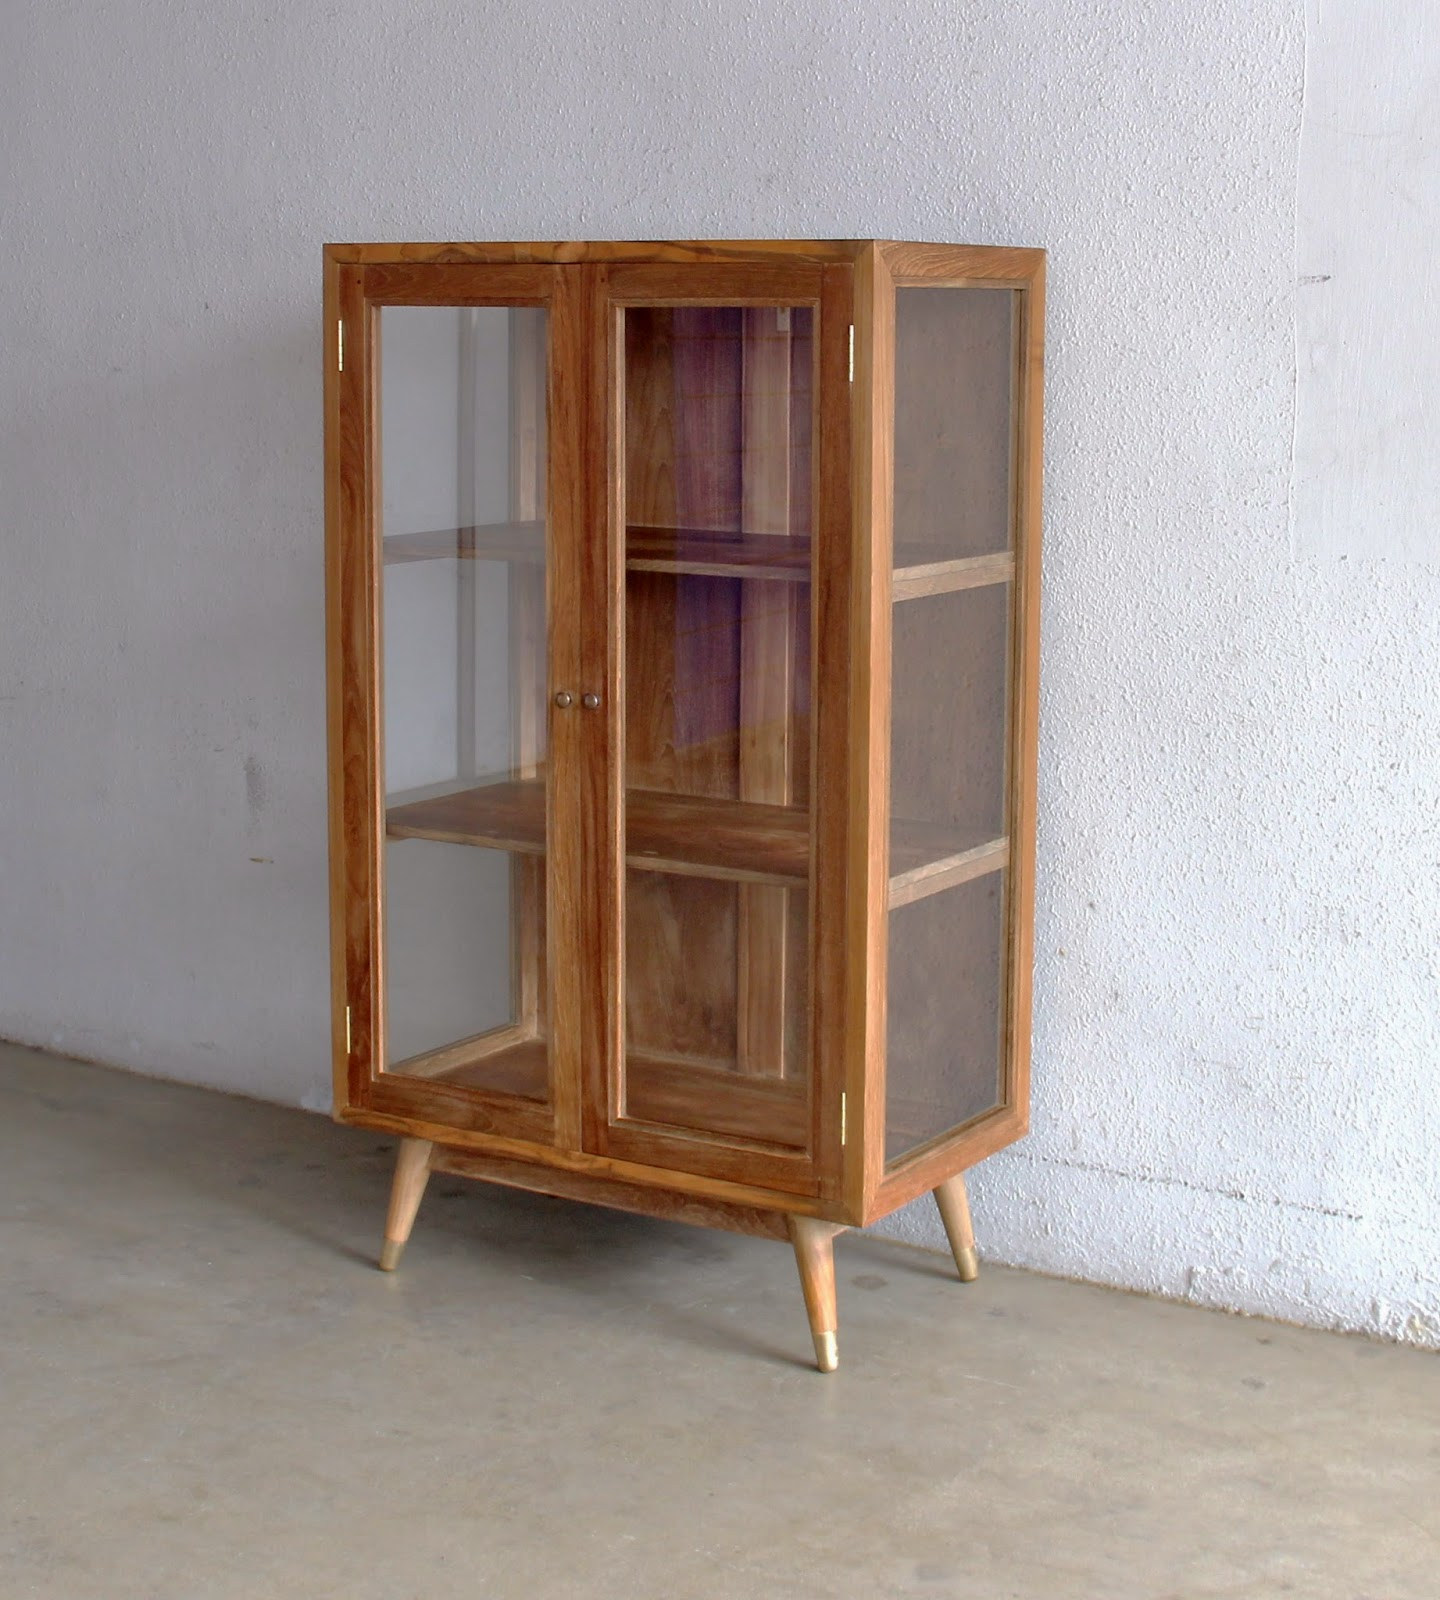 Glass Display Cabinets Perth Second Charm Furniture Vintage Style Showcases Ashley